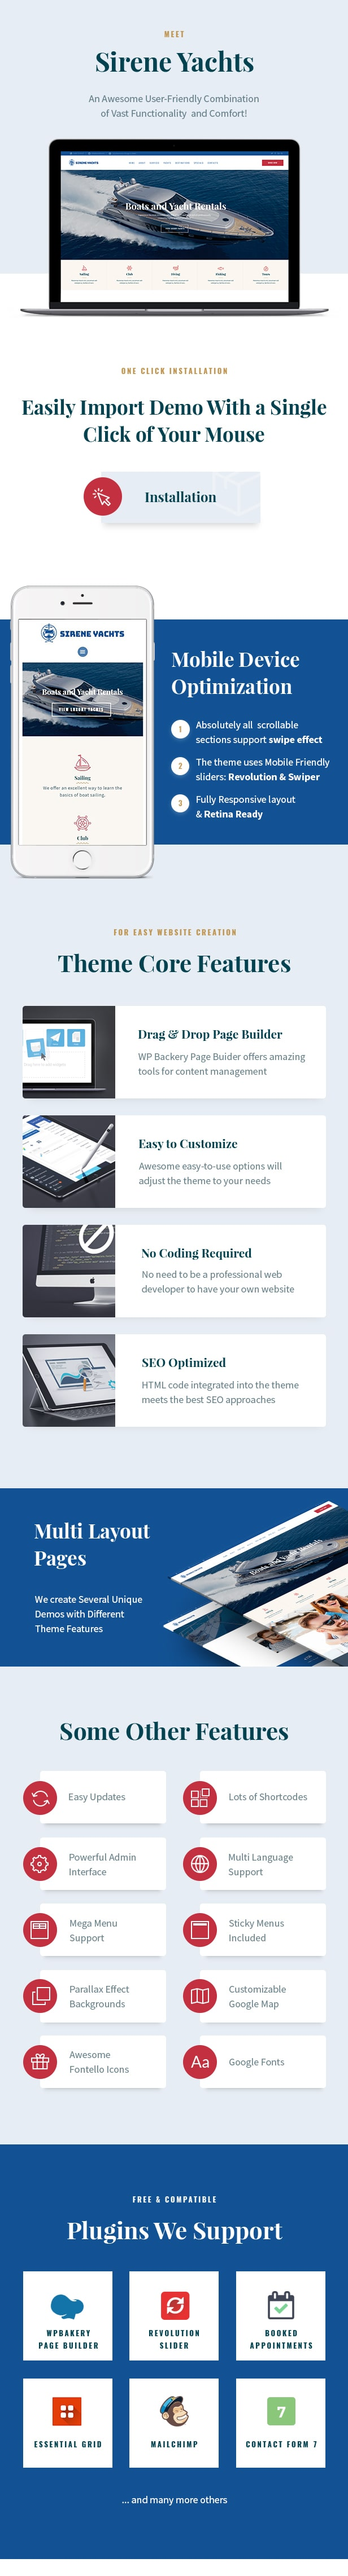 Sirene | Yacht Charter Services & Boat Rental WordPress Theme - 1